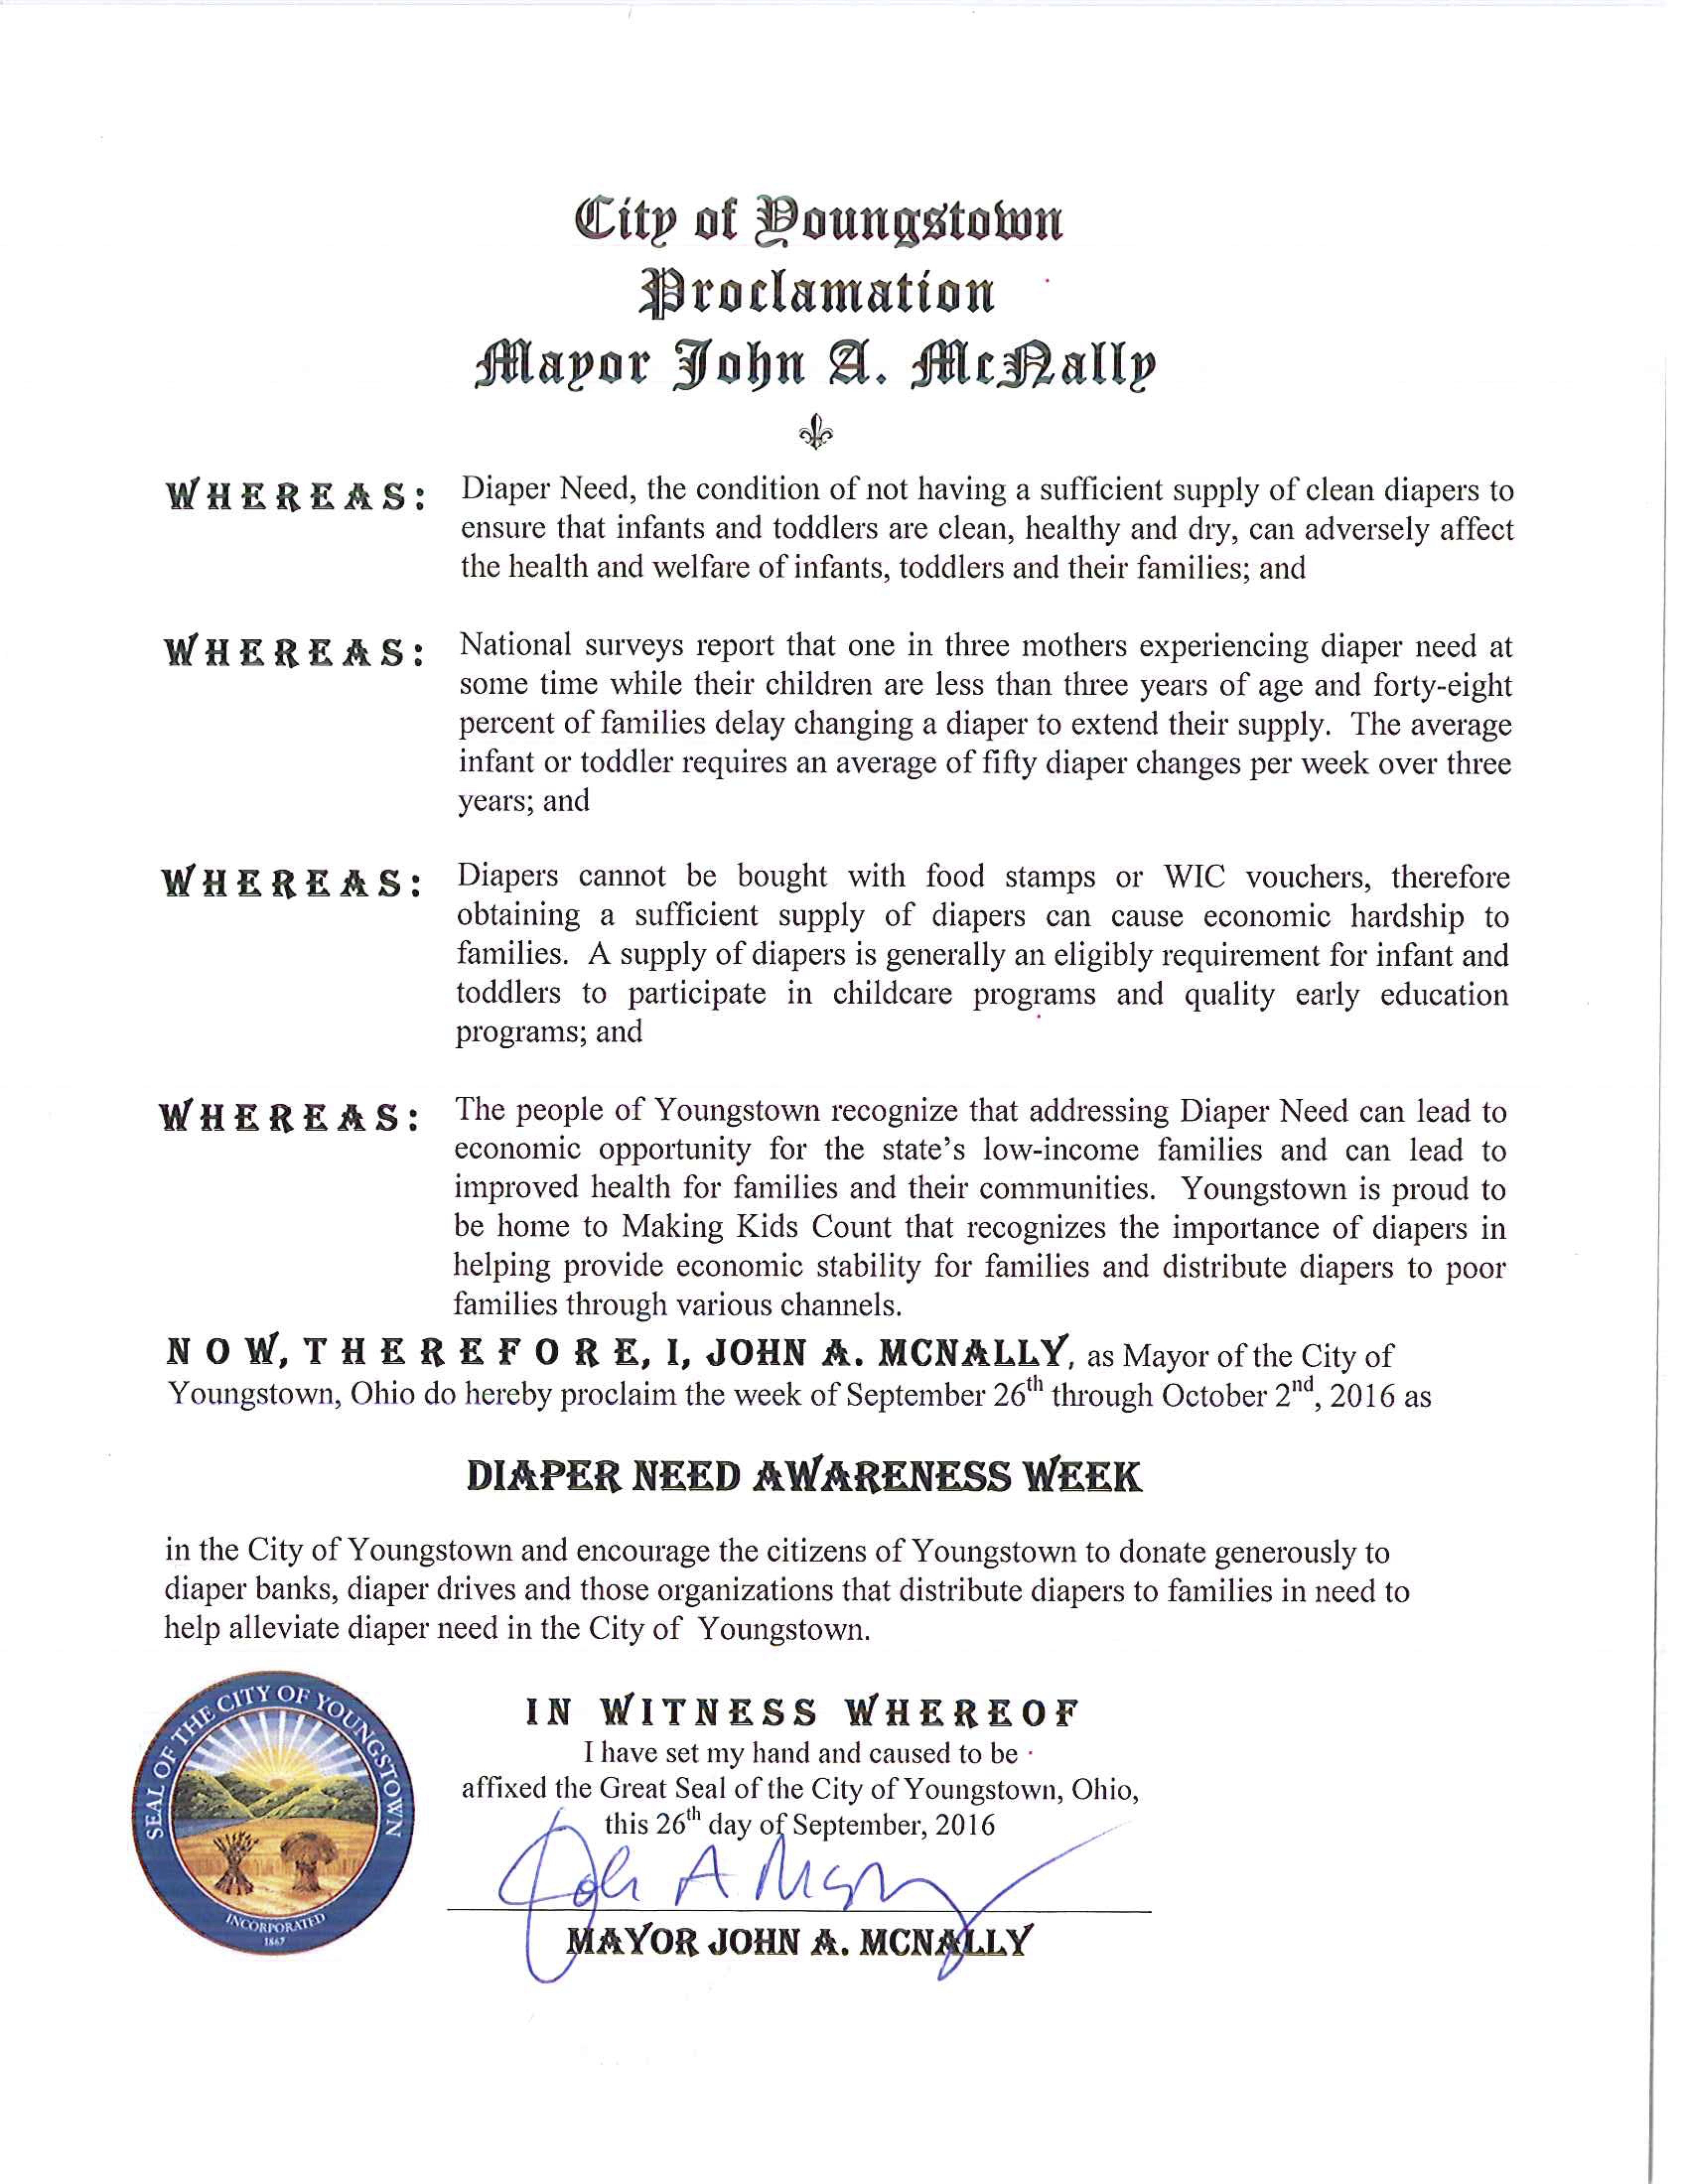 Youngstown, OH - Mayoral proclamation recognizing Diaper Need Awareness Week (Sept. 26 - Oct. 2, 2016) #DiaperNeed www.diaperneed.org